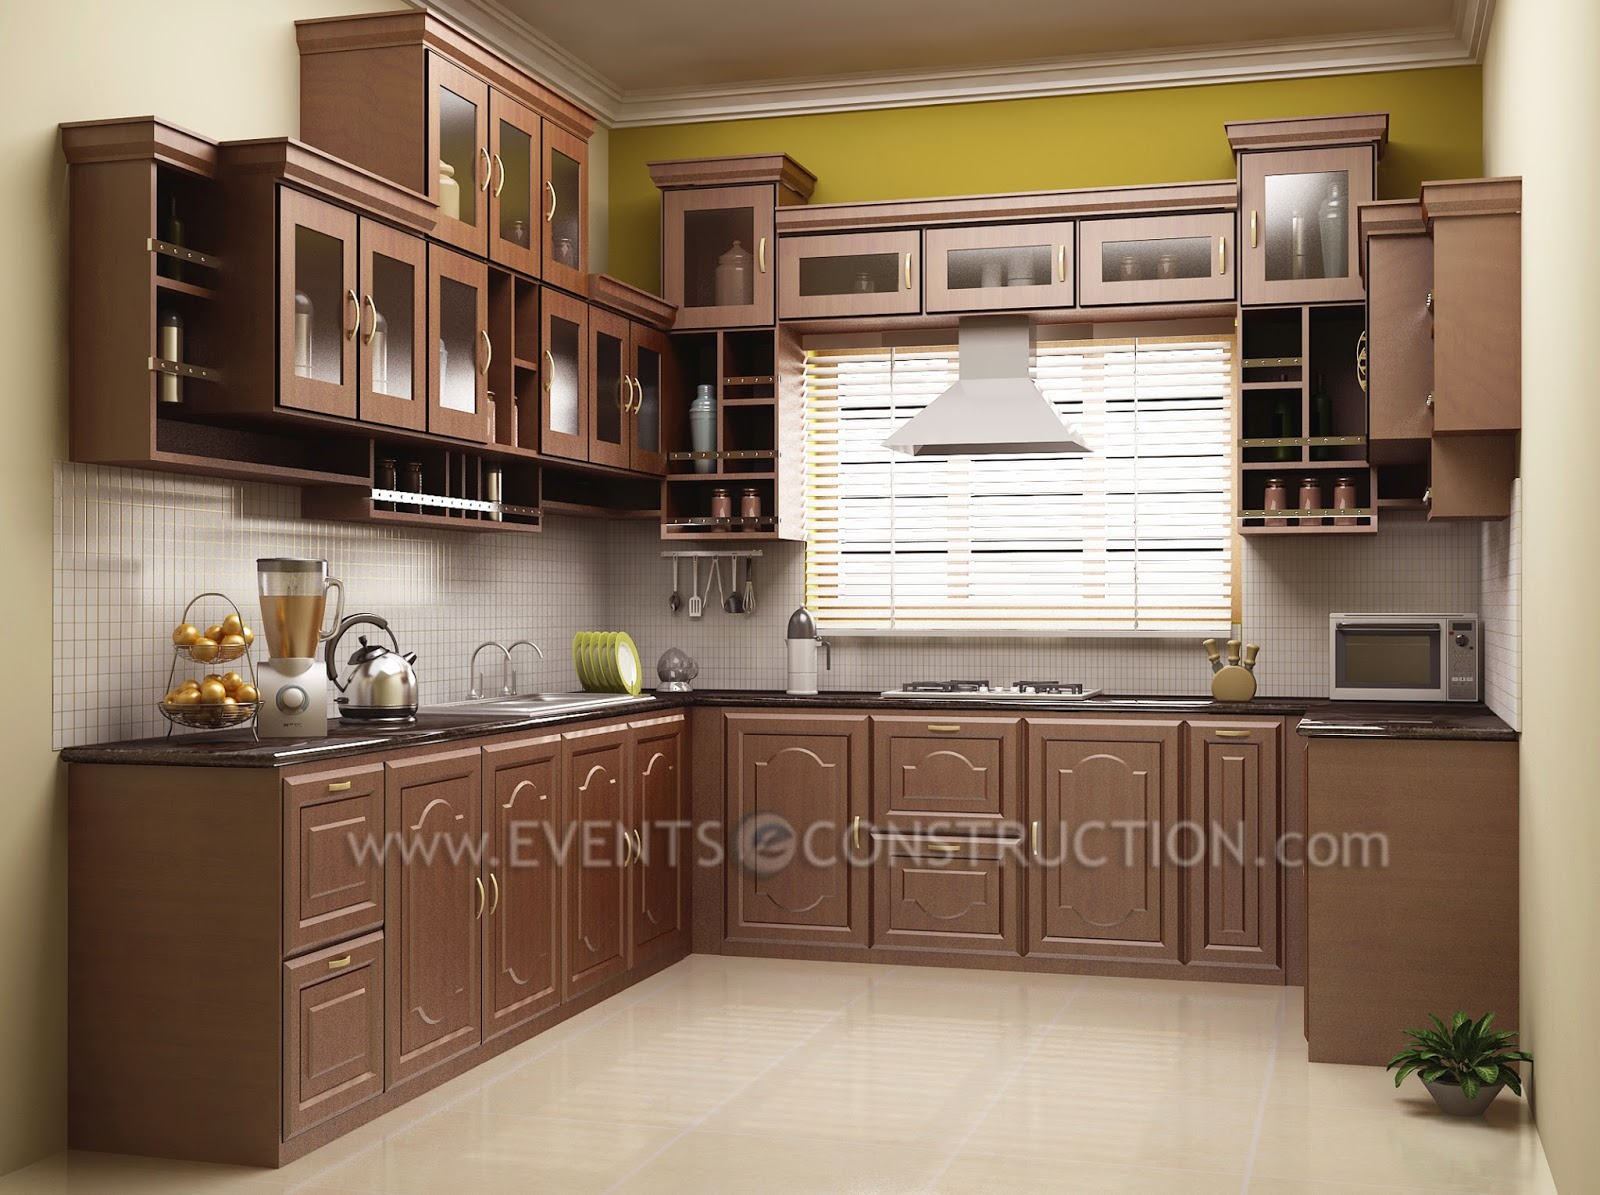 Evens construction pvt ltd kerala kitchen interior for New kitchen designs in kerala